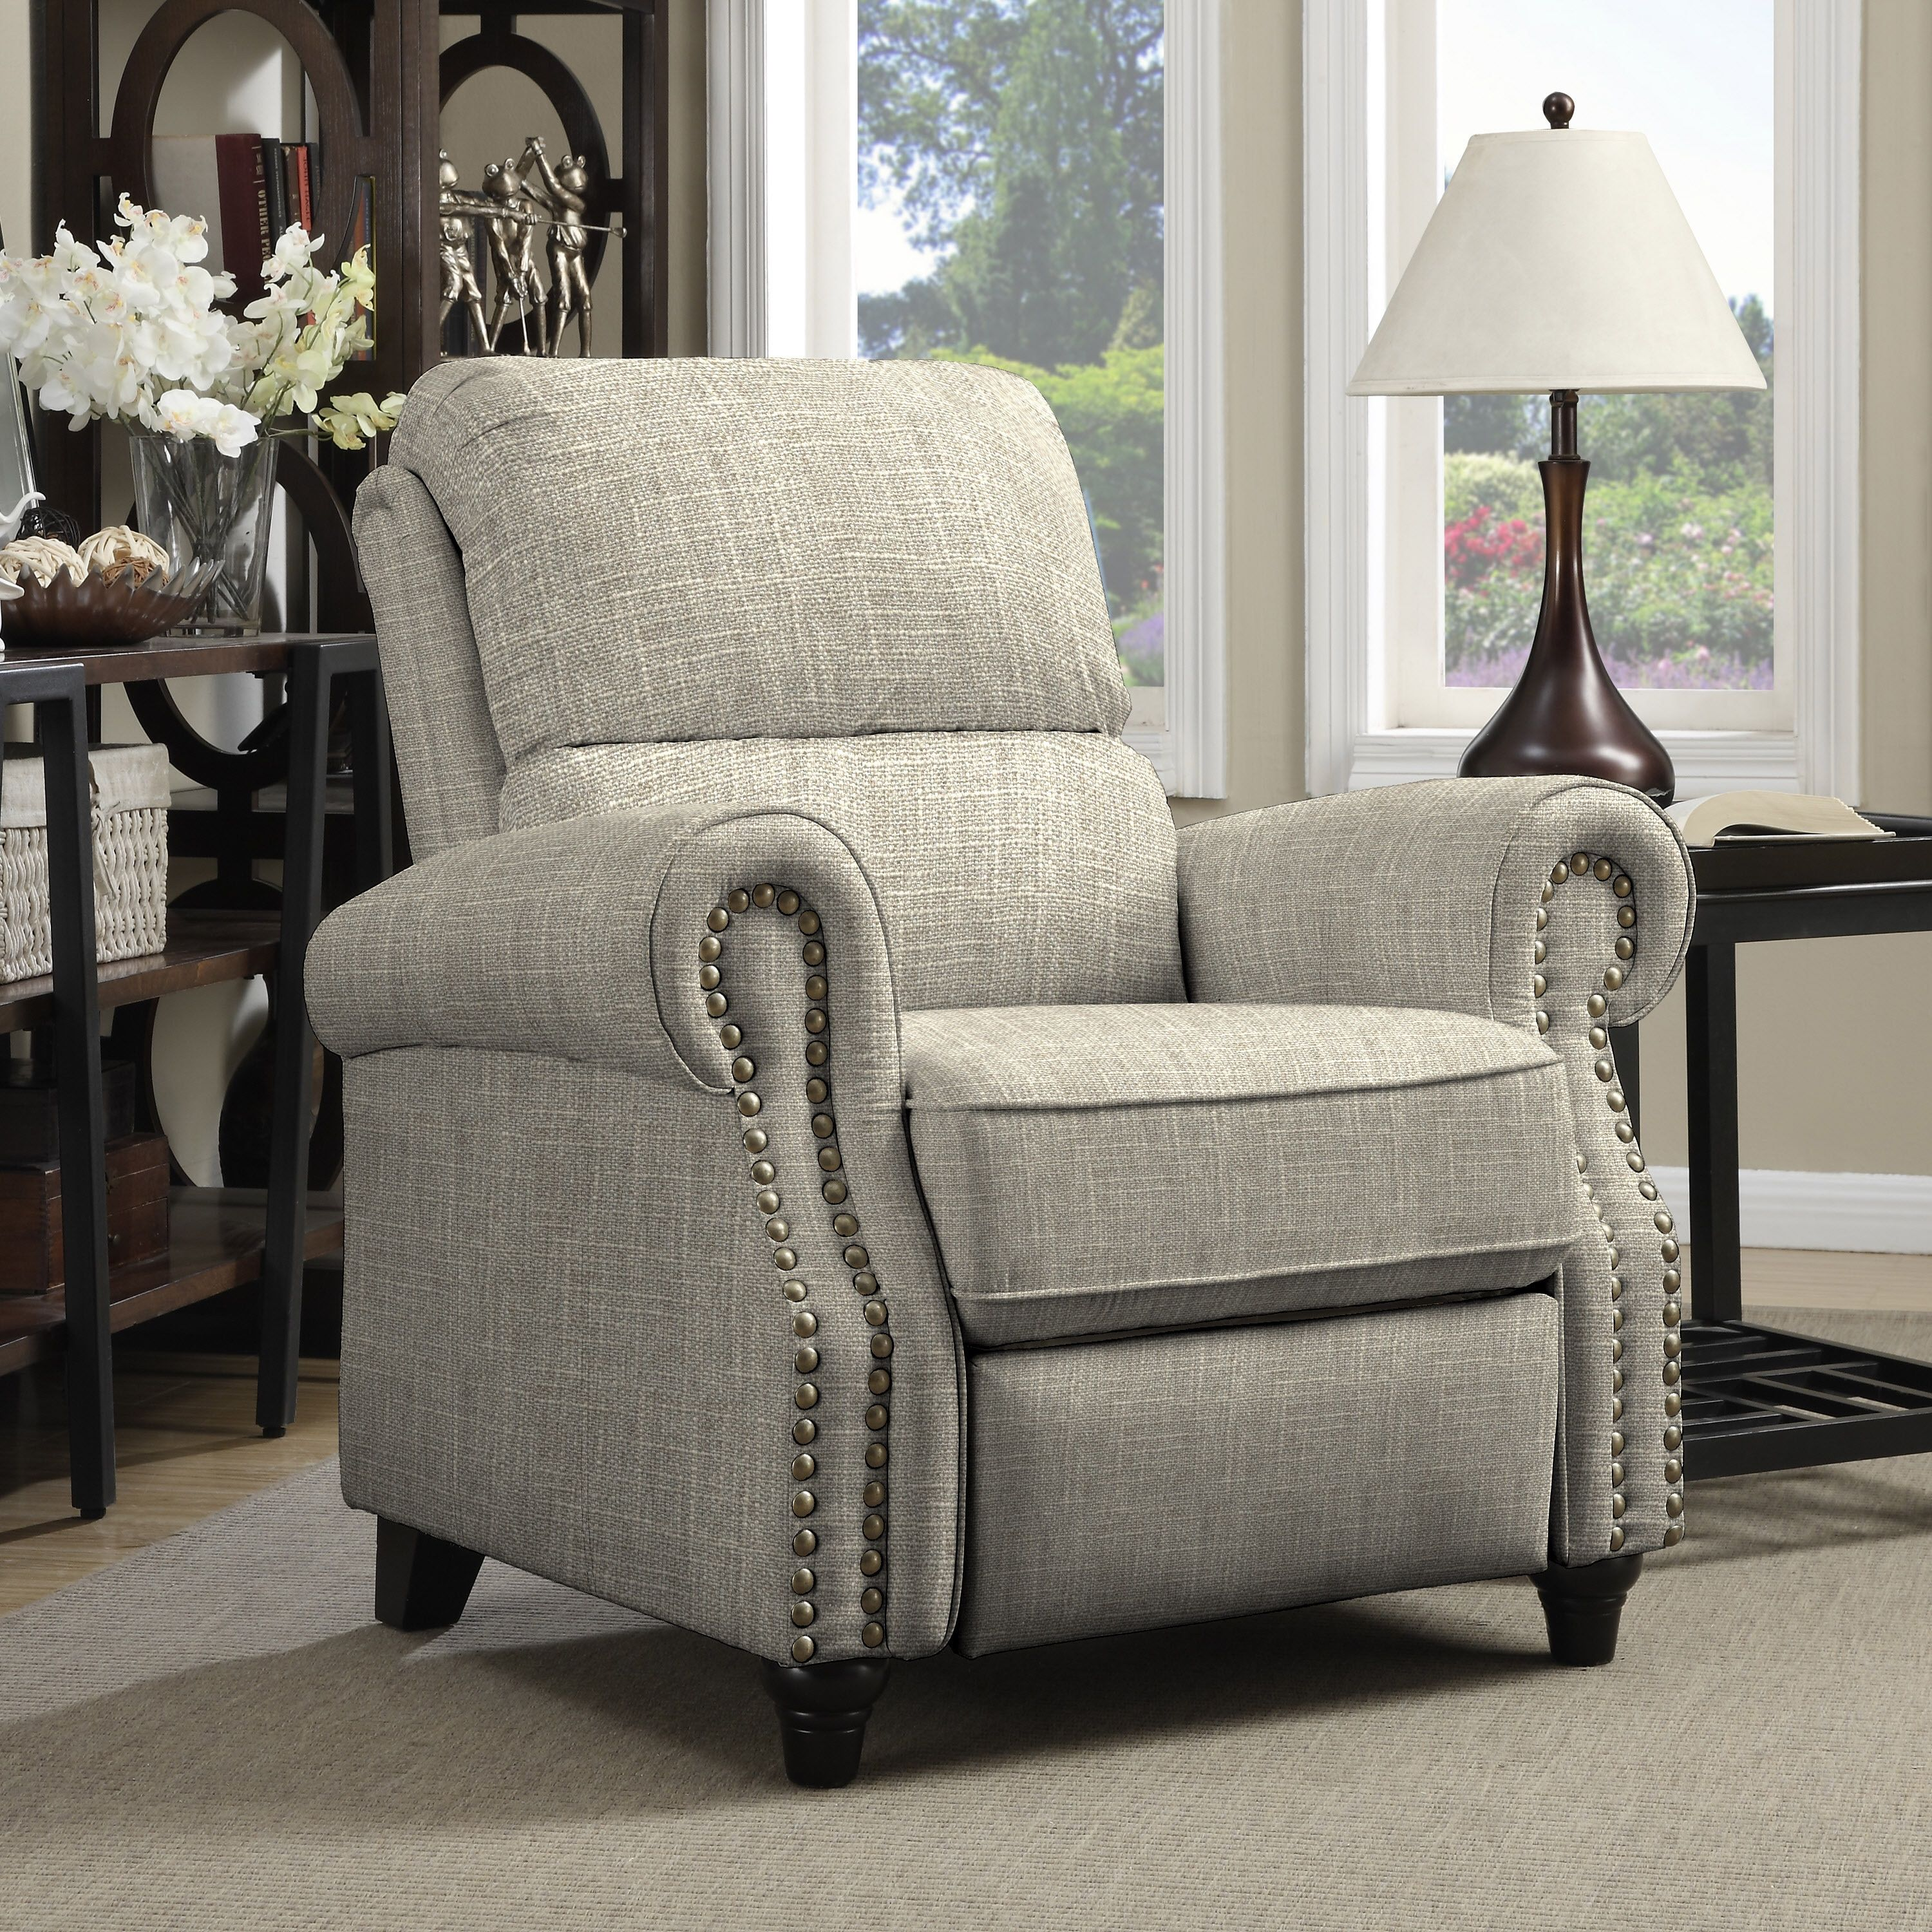 Living Room Chairs Create An Inviting Atmosphere With New Living Room Chairs Decorate Your